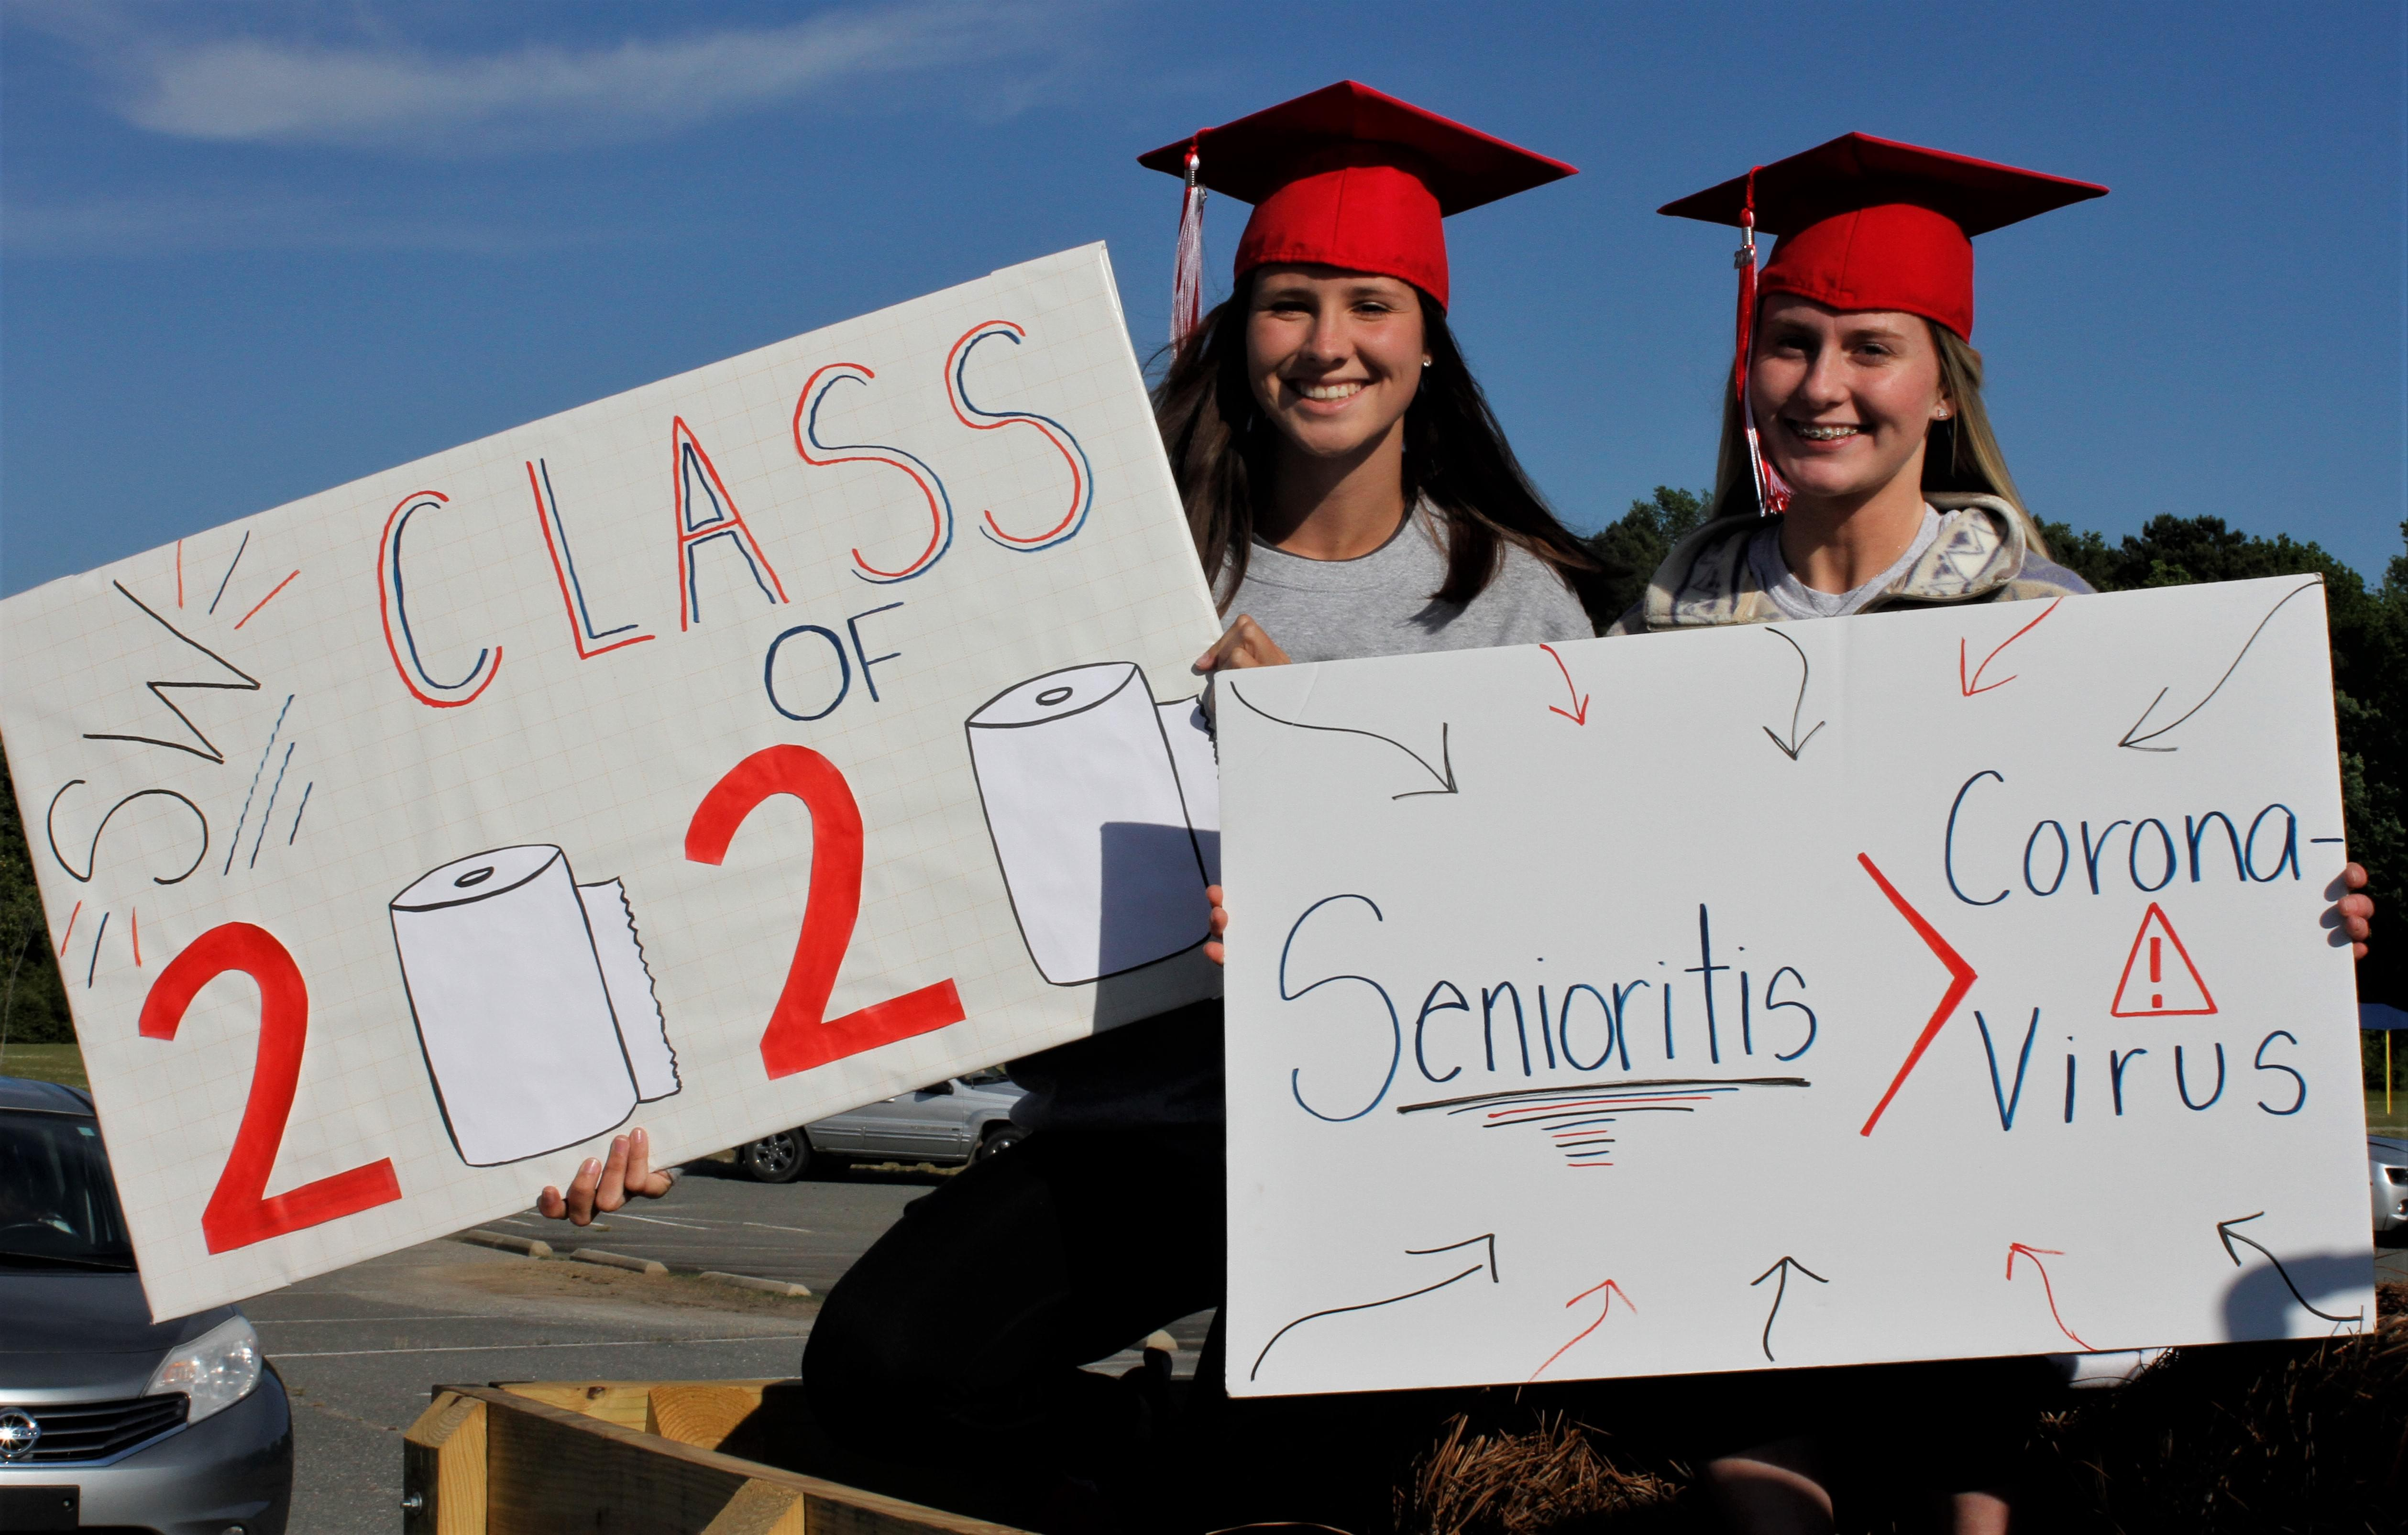 WCPS To Hold In-Person, On-Field Graduation Ceremonies